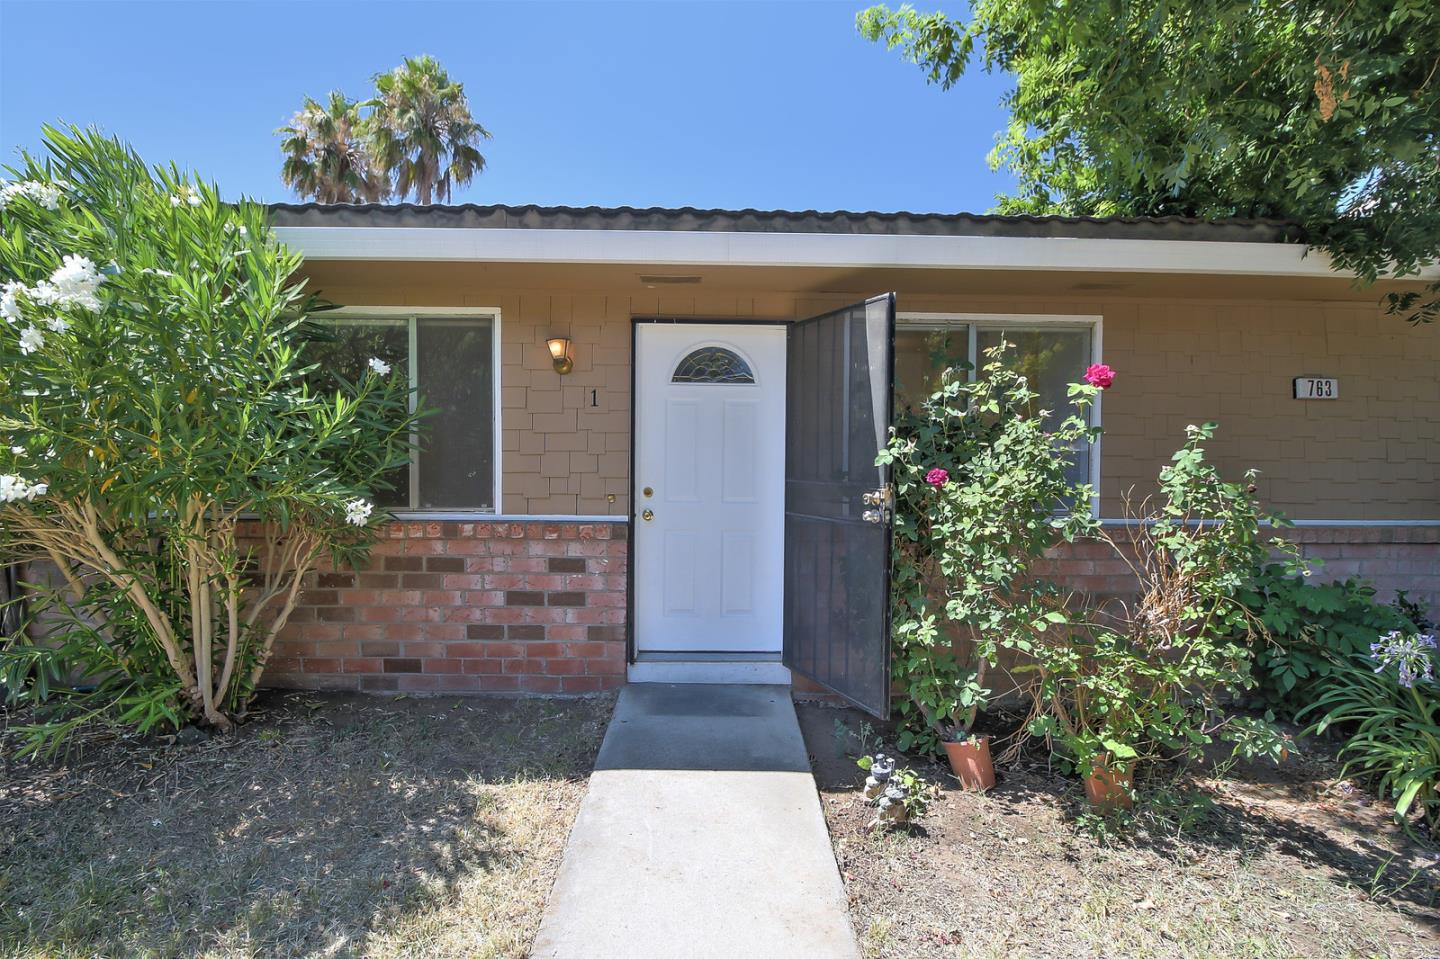 Additional photo for property listing at 763 Warring Drive  San Jose, カリフォルニア 95123 アメリカ合衆国